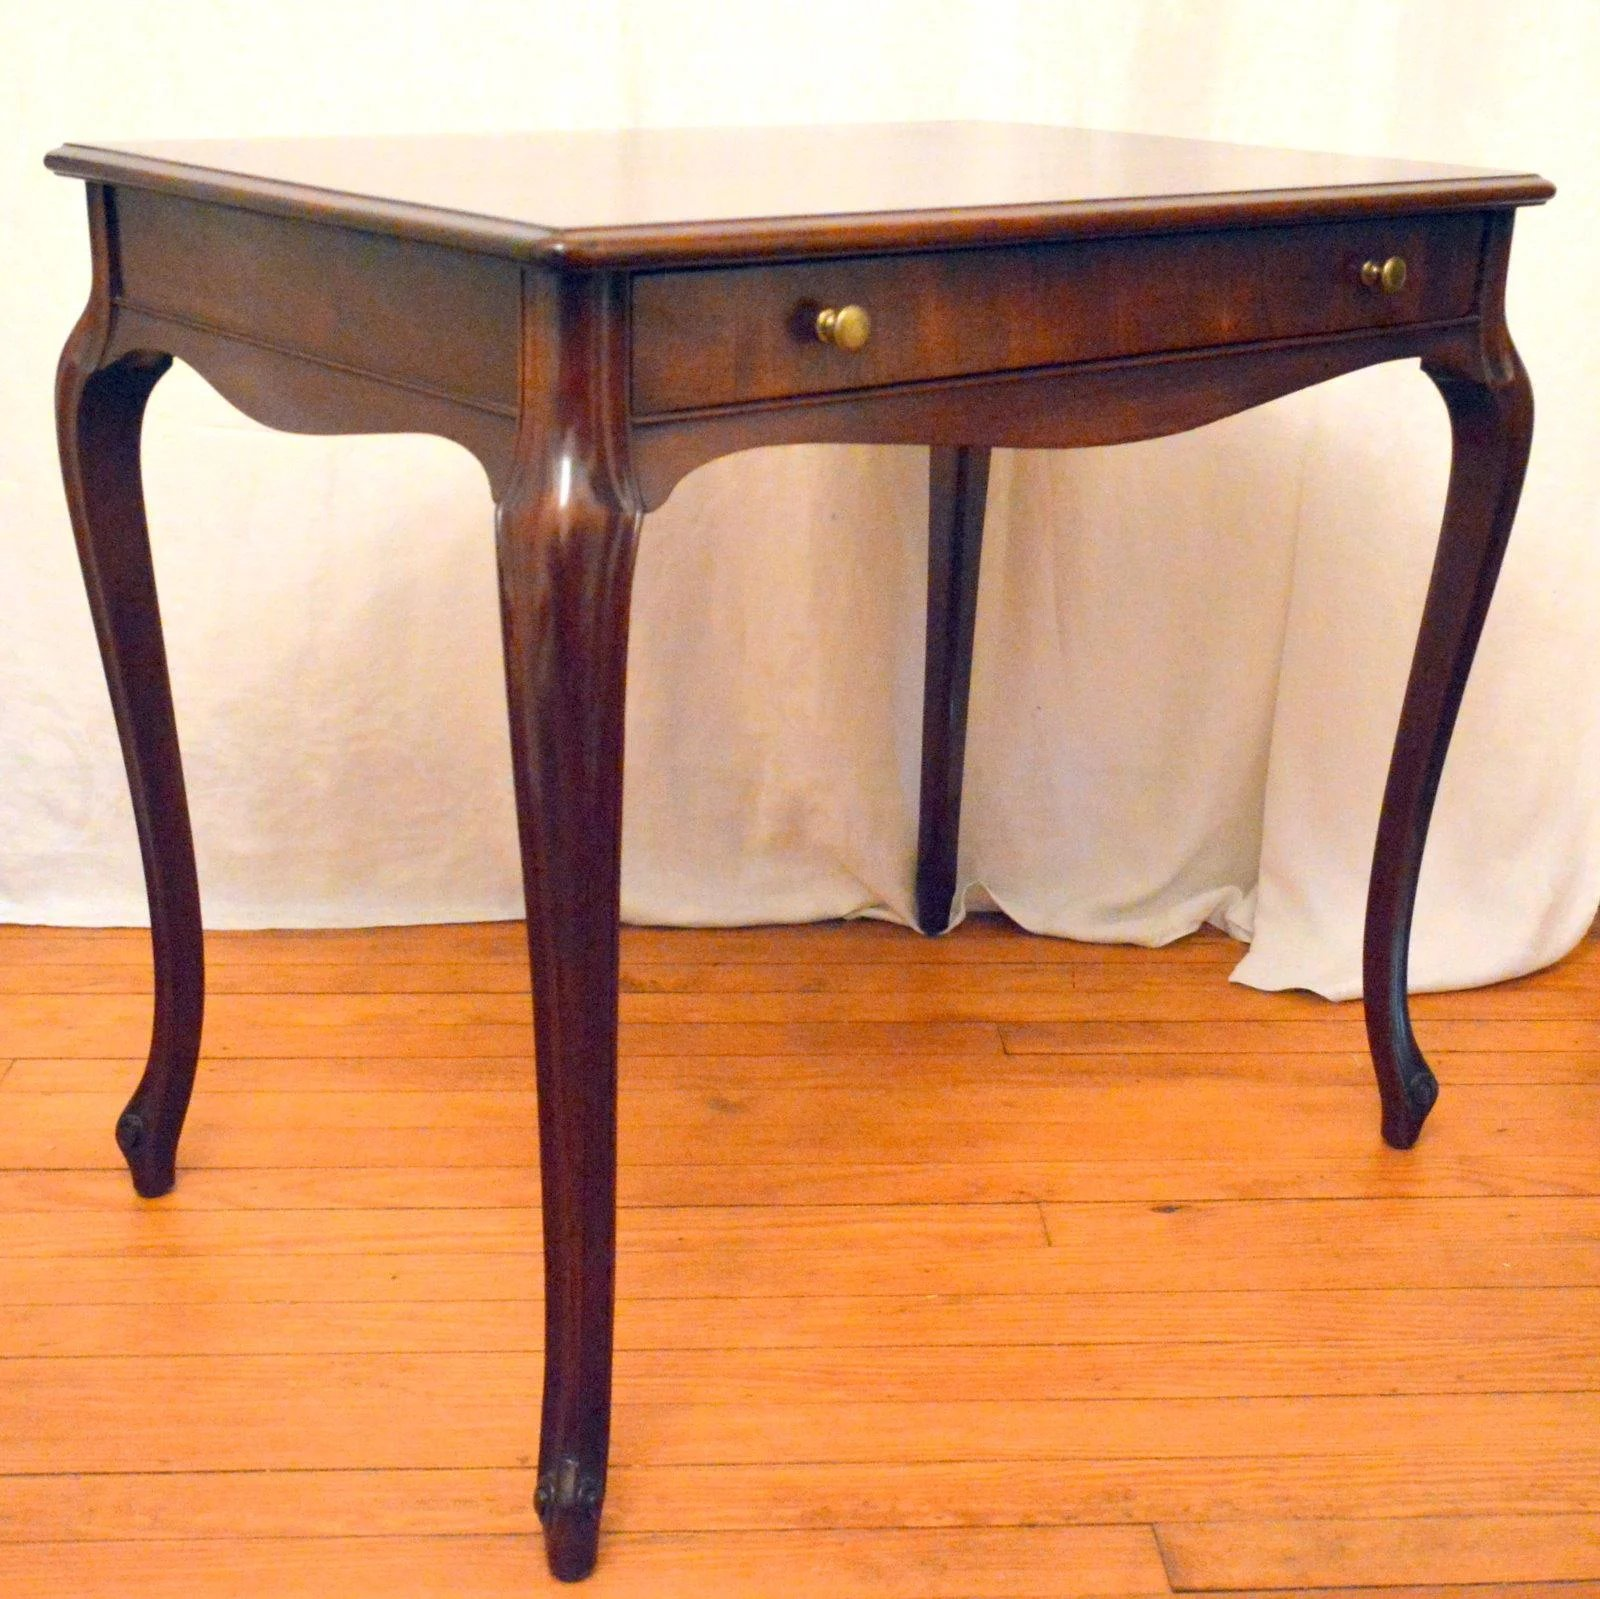 mahogany library table desk when drawer is opened pooley furniture co the front porch. Black Bedroom Furniture Sets. Home Design Ideas